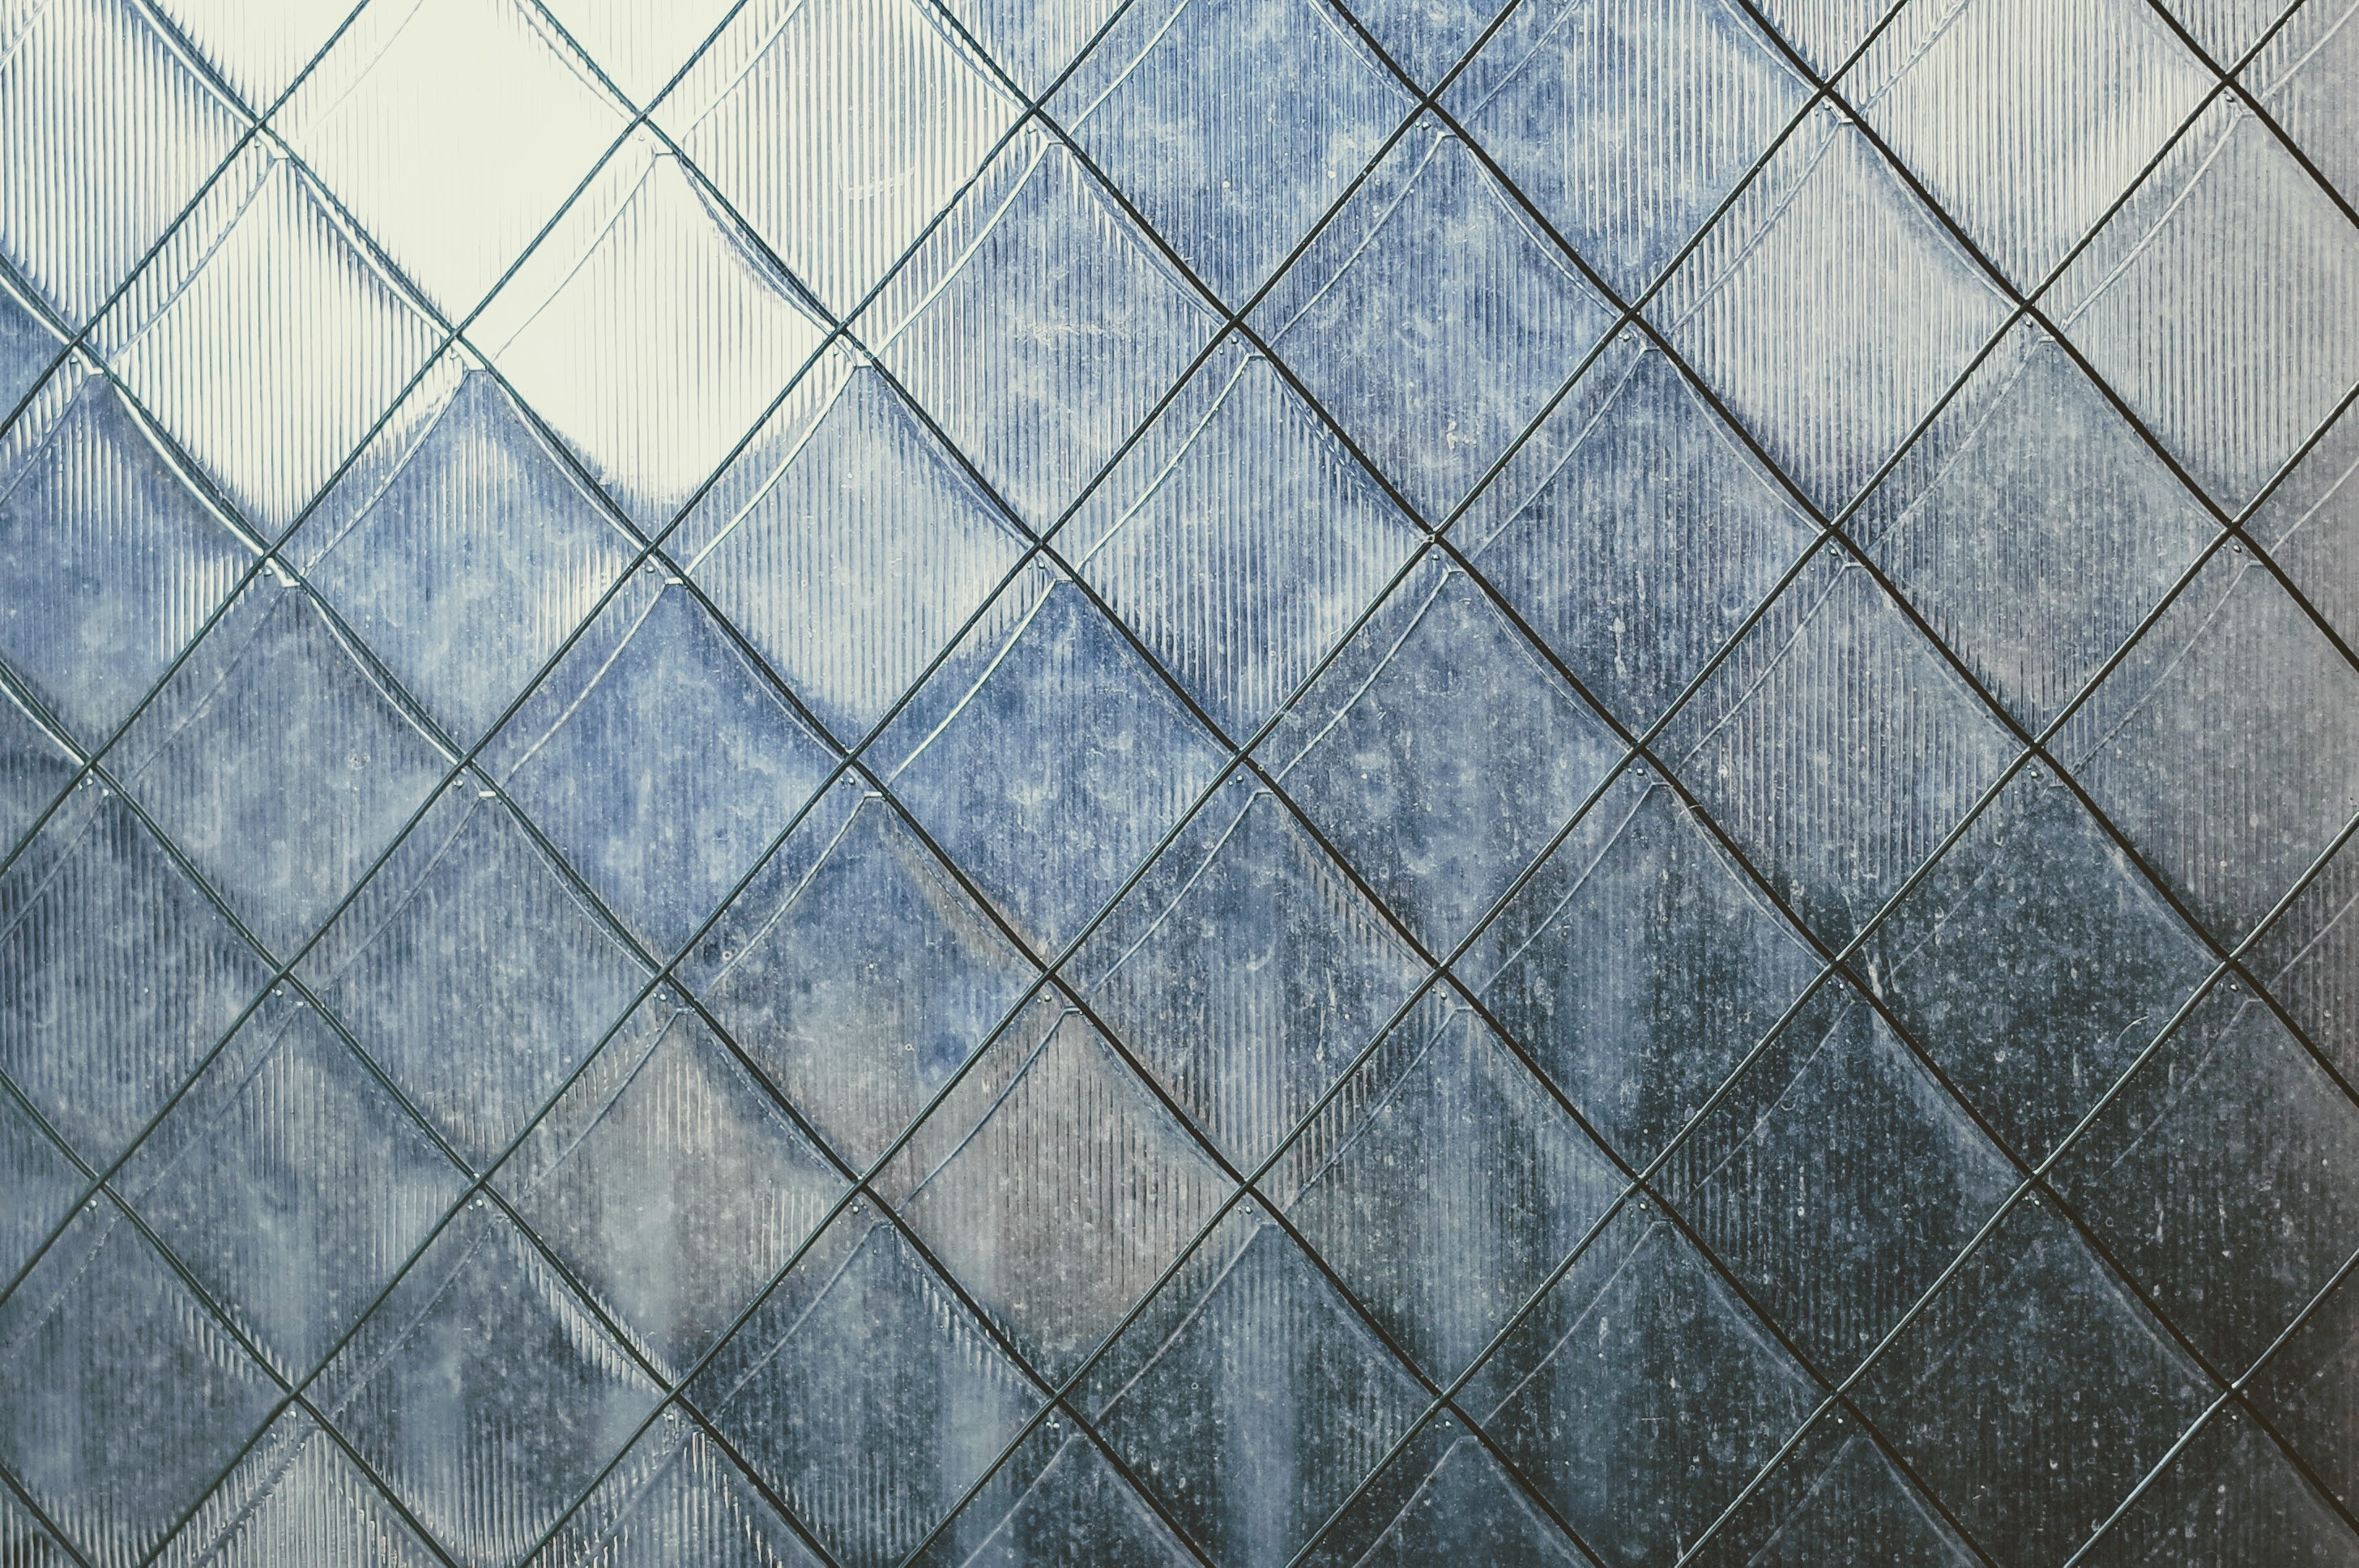 Pictures Of Tile Free Stock Photos Of Tiles A Pexels